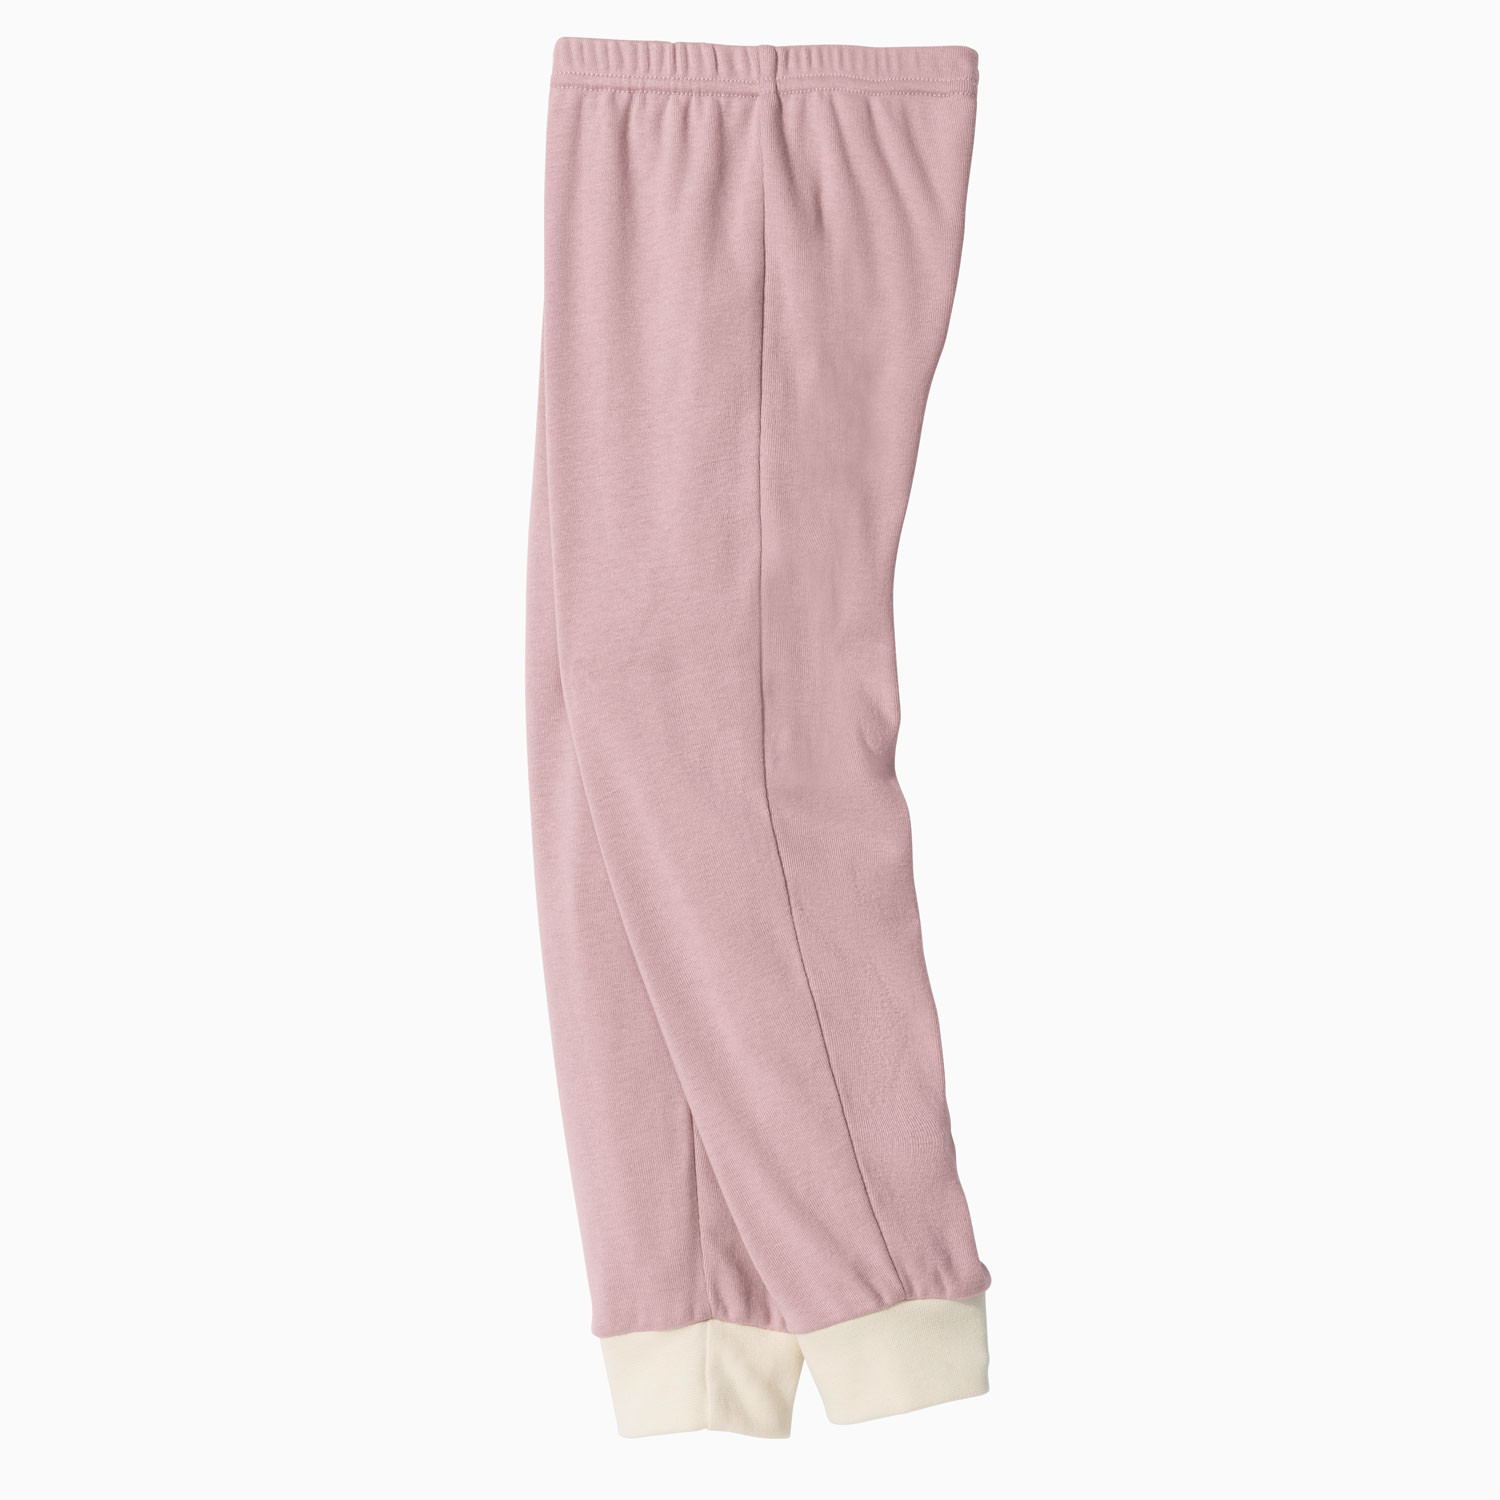 Pyjamabroek, roze